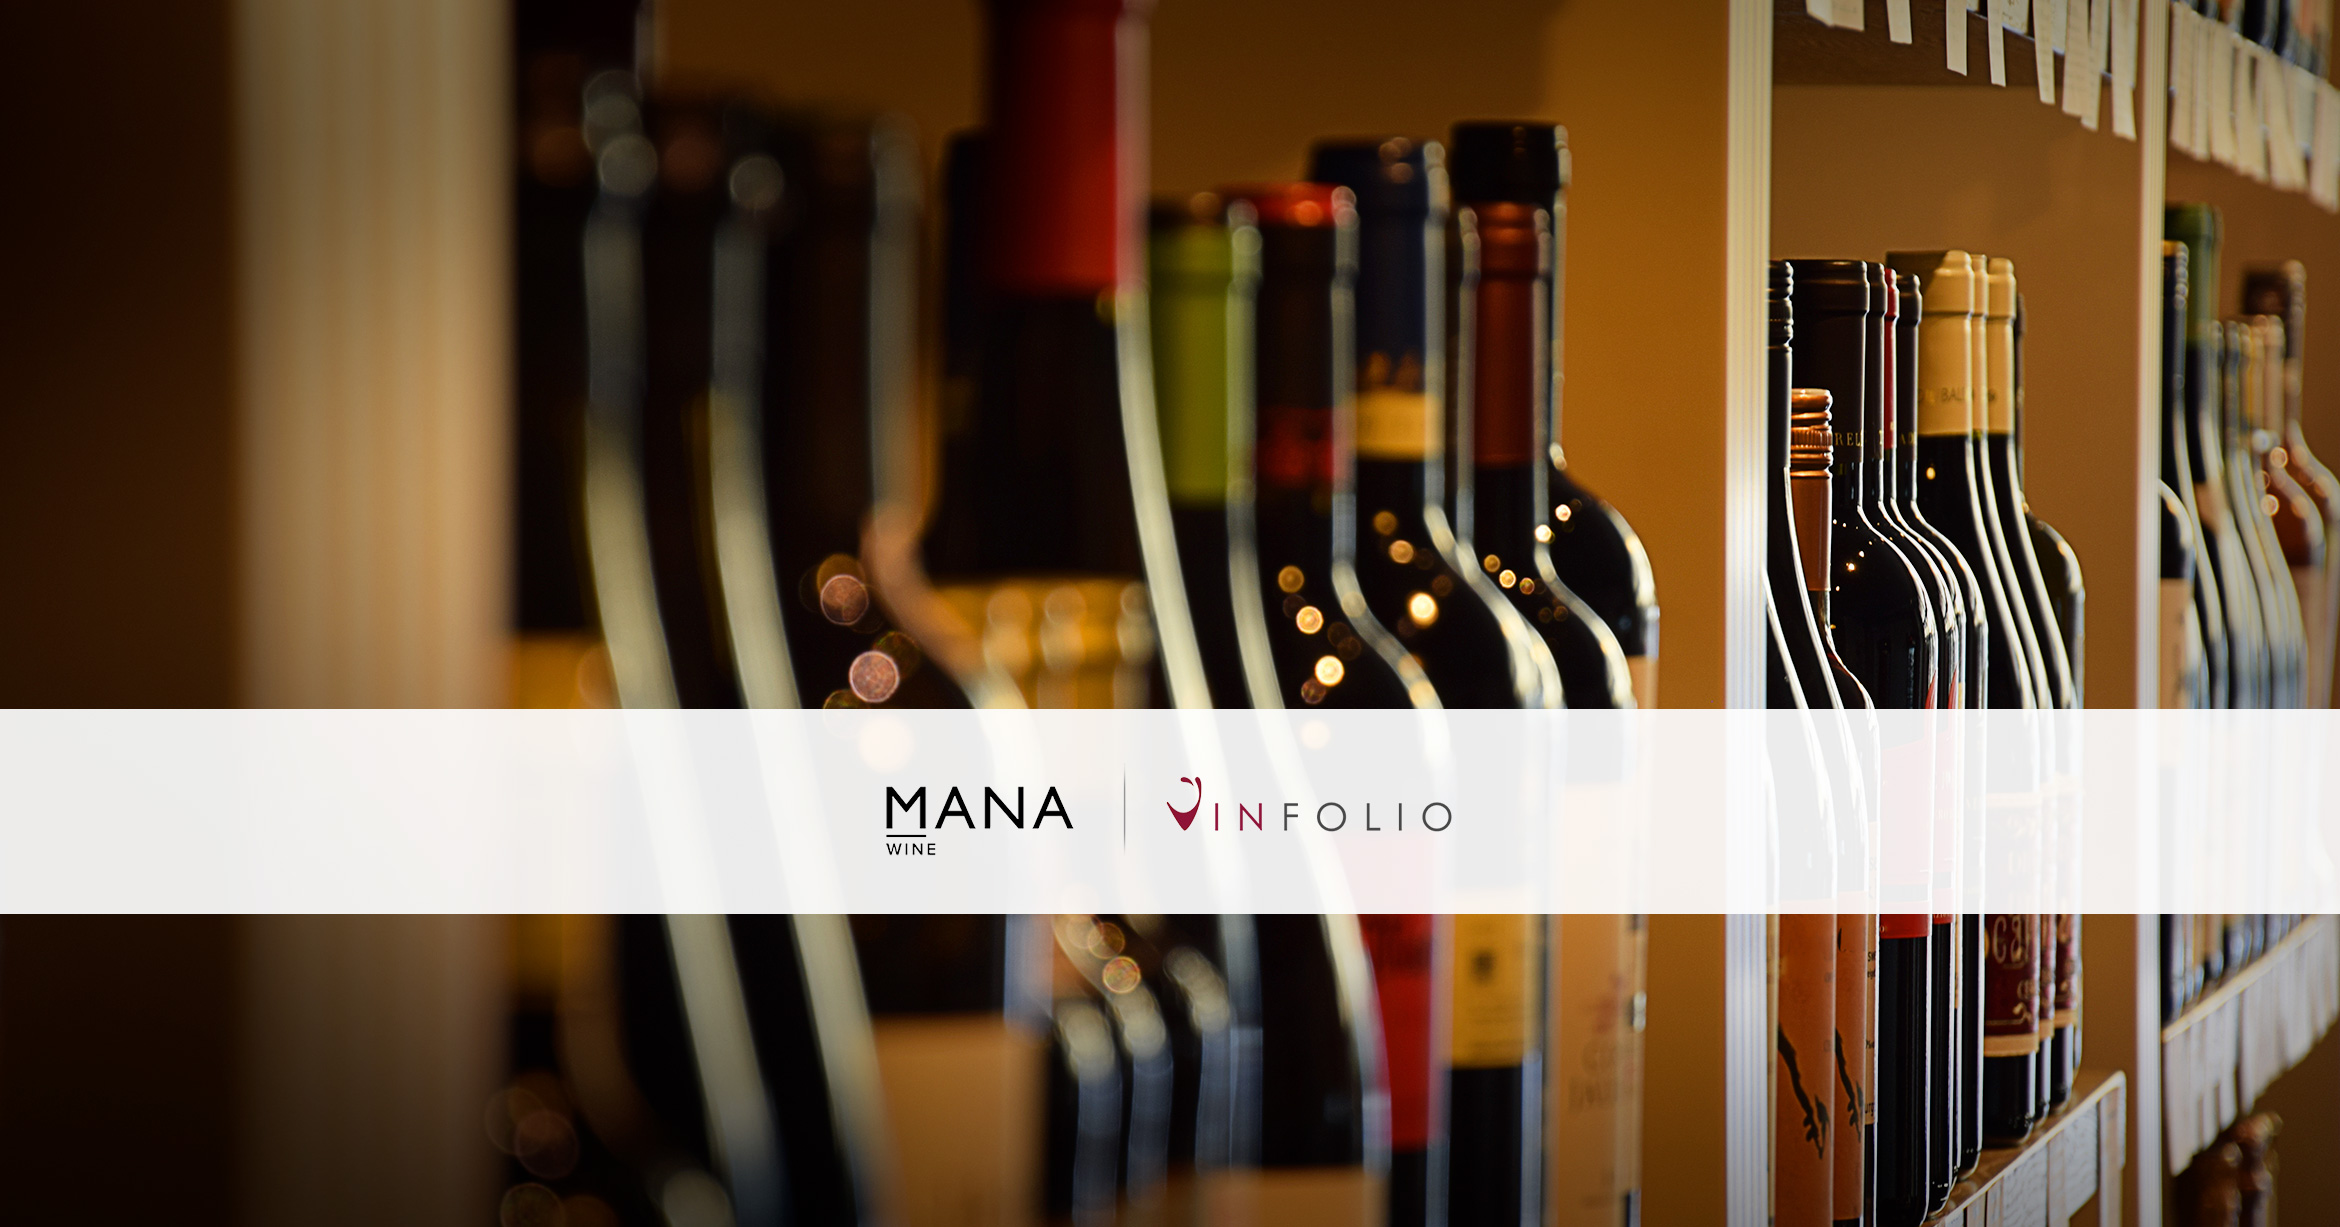 Buy Wine - Vinfolio Mana Wine Partnership